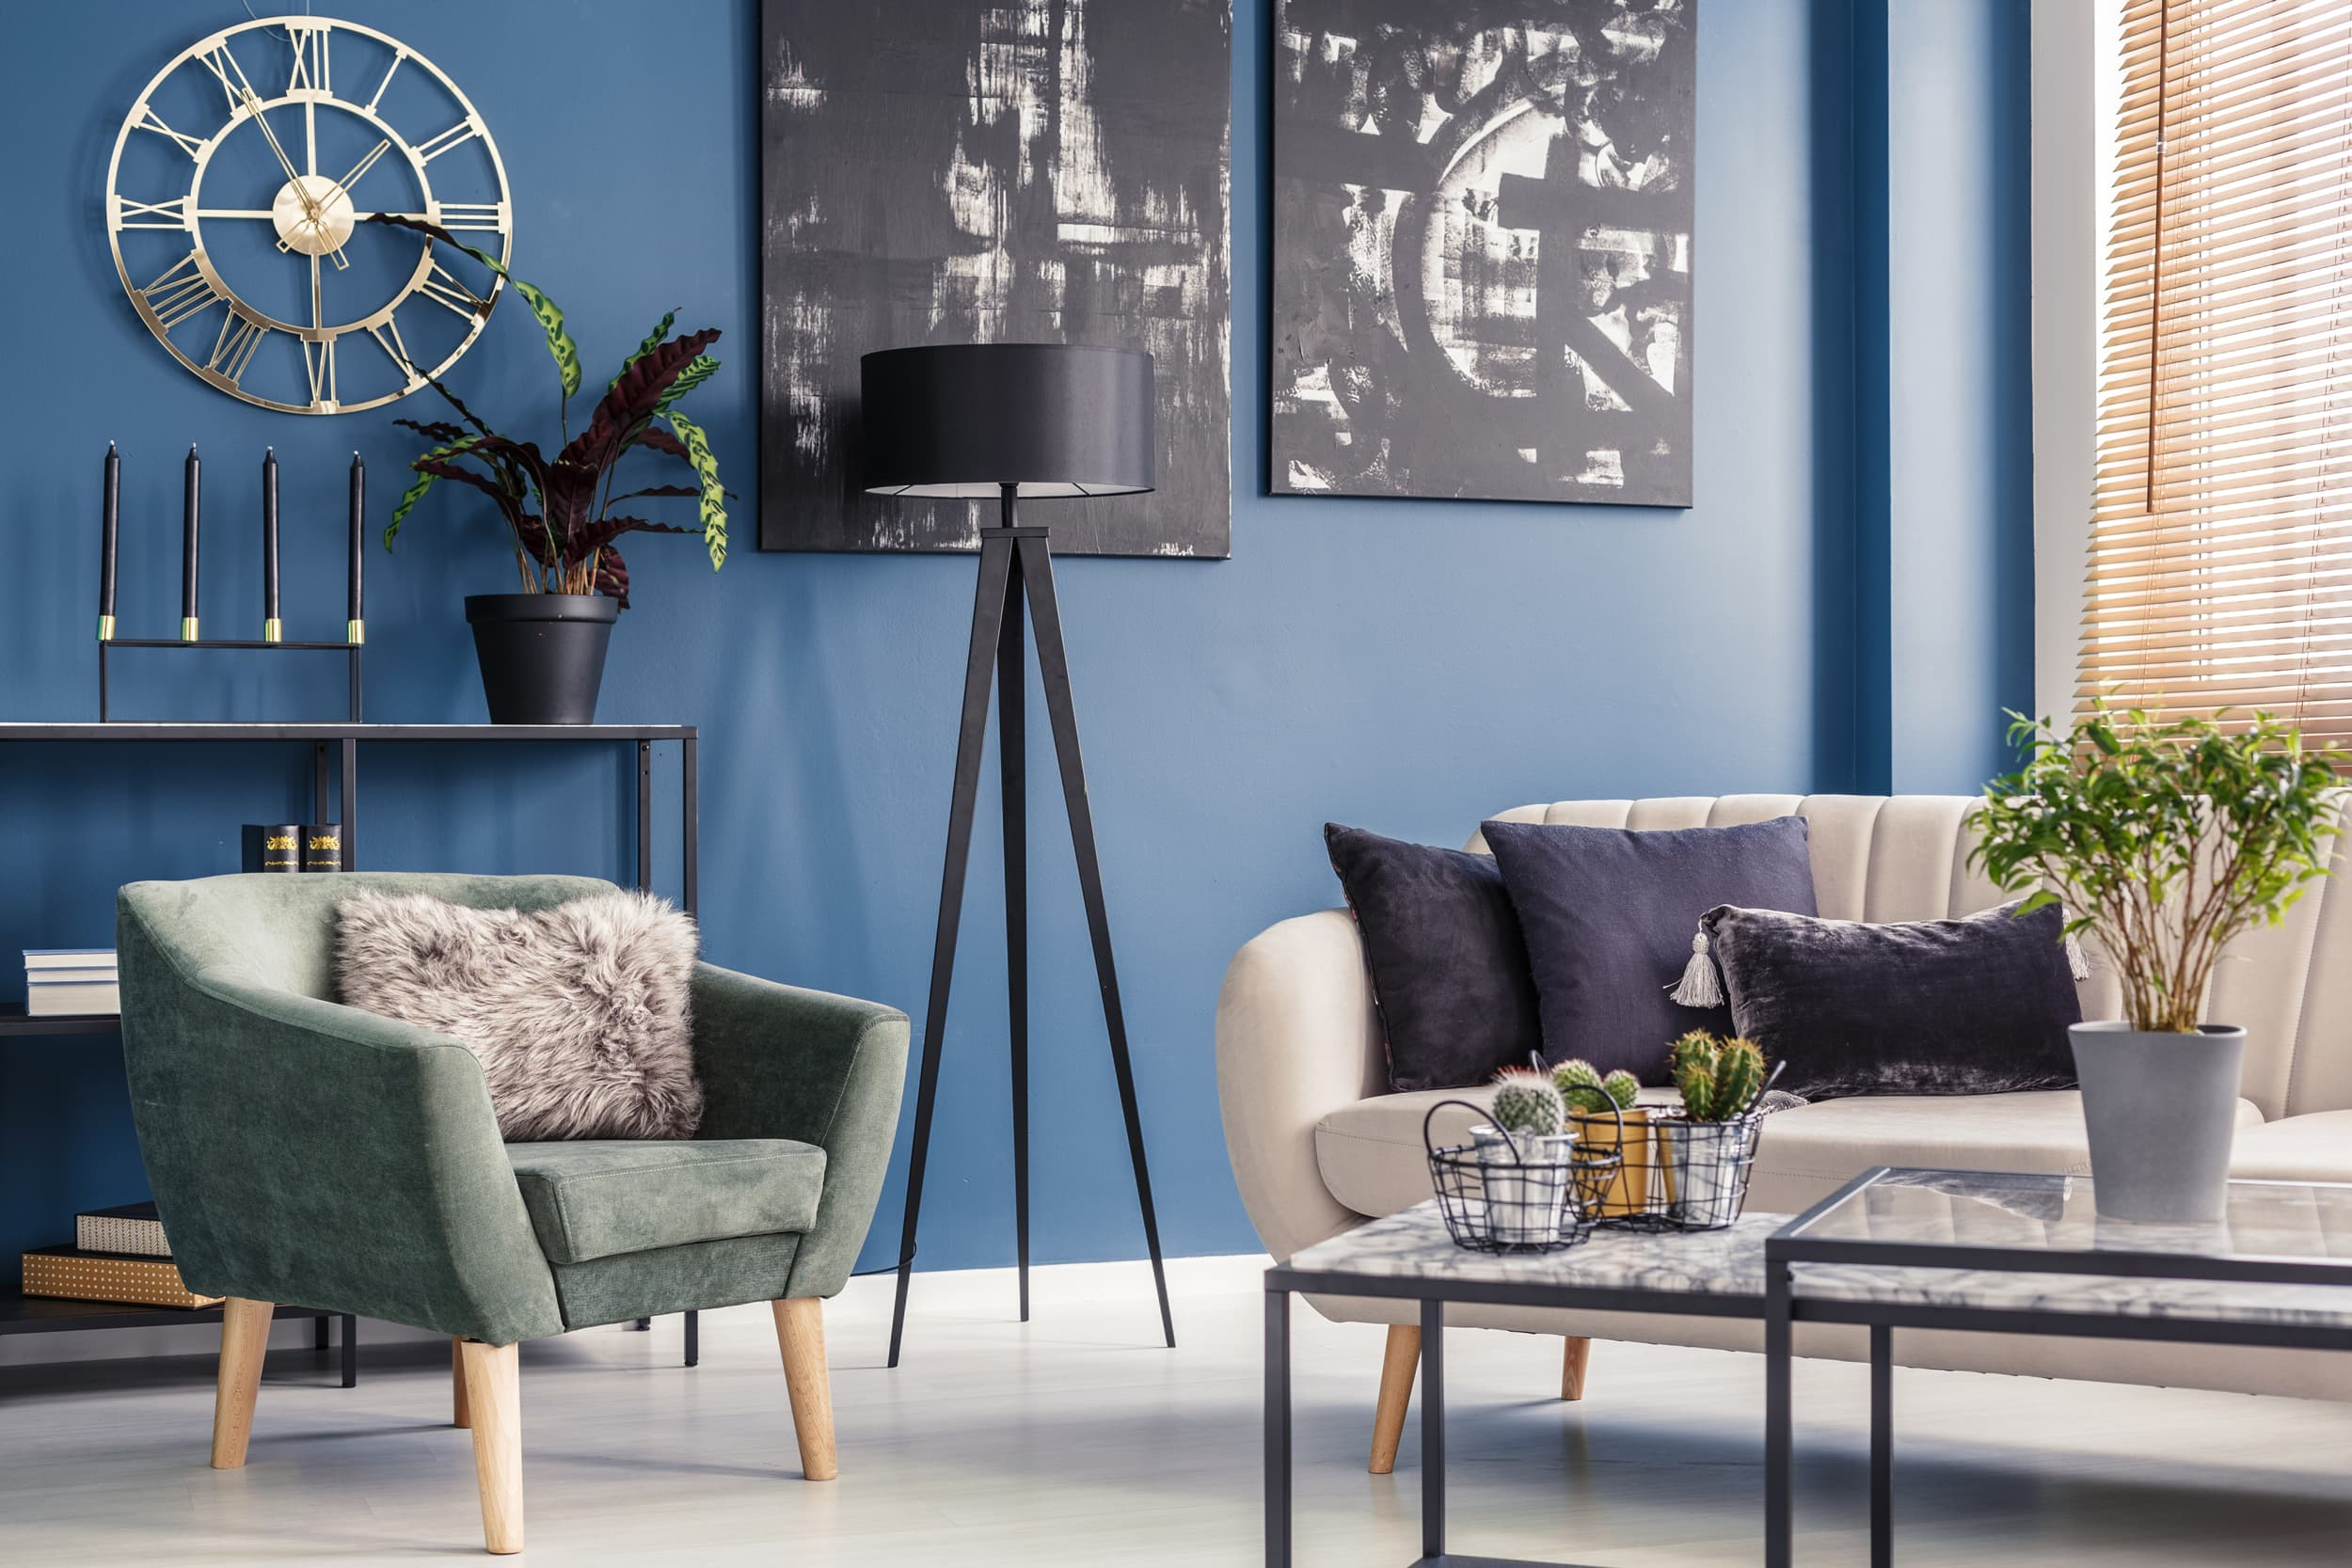 Elegant decorative cushions on a beige sofa and a modern mint green armchair in a blue living room interior